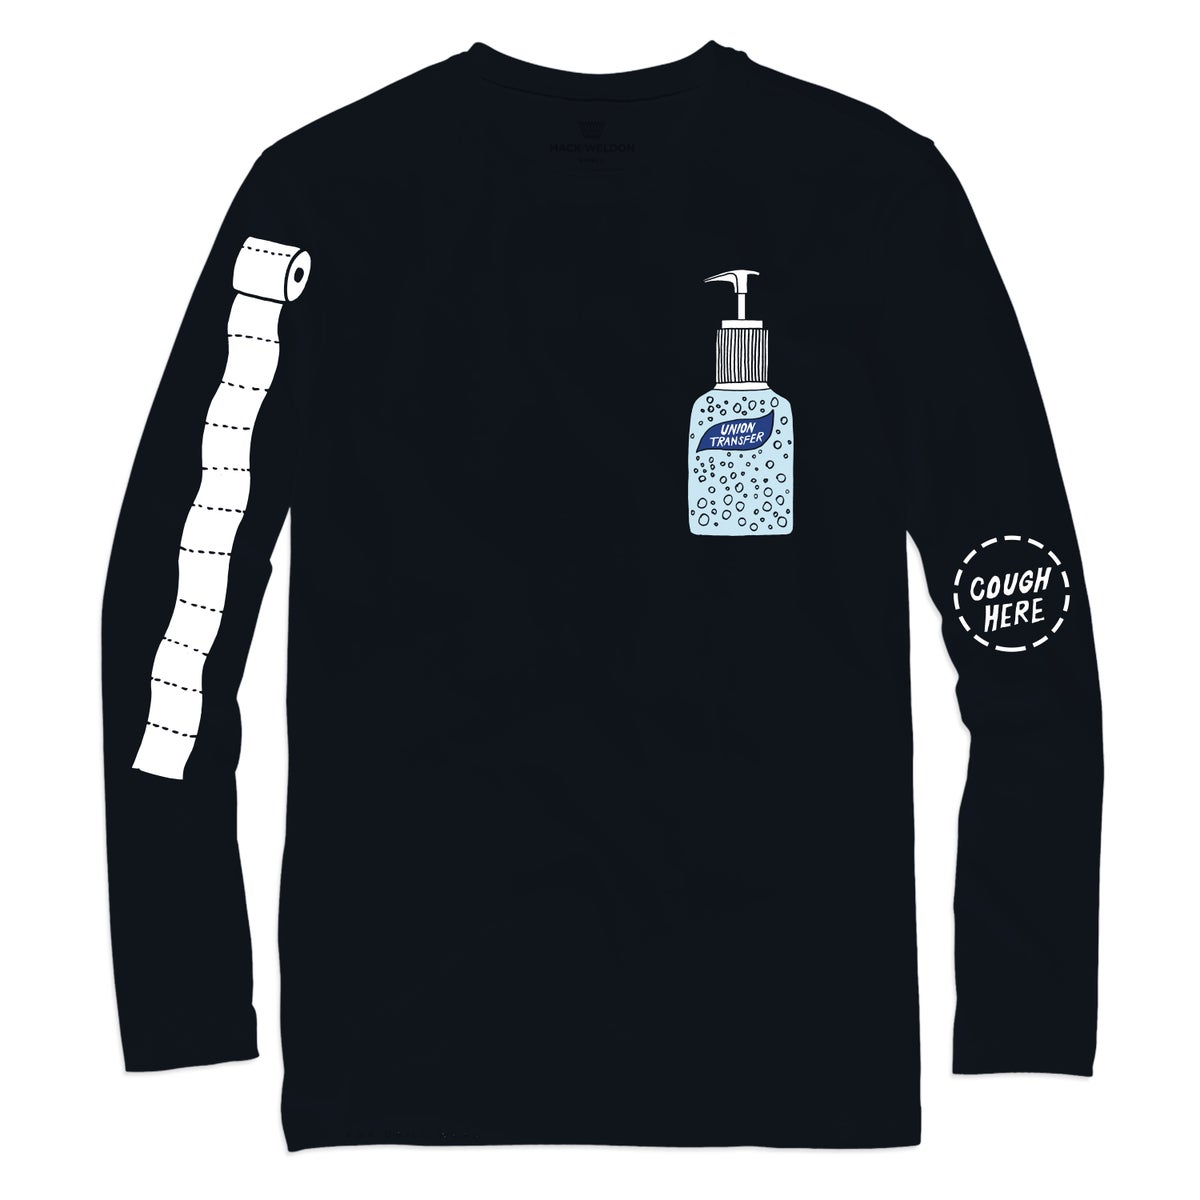 Union Transfer COVID-19 Relief Shirt (Long Sleeve)